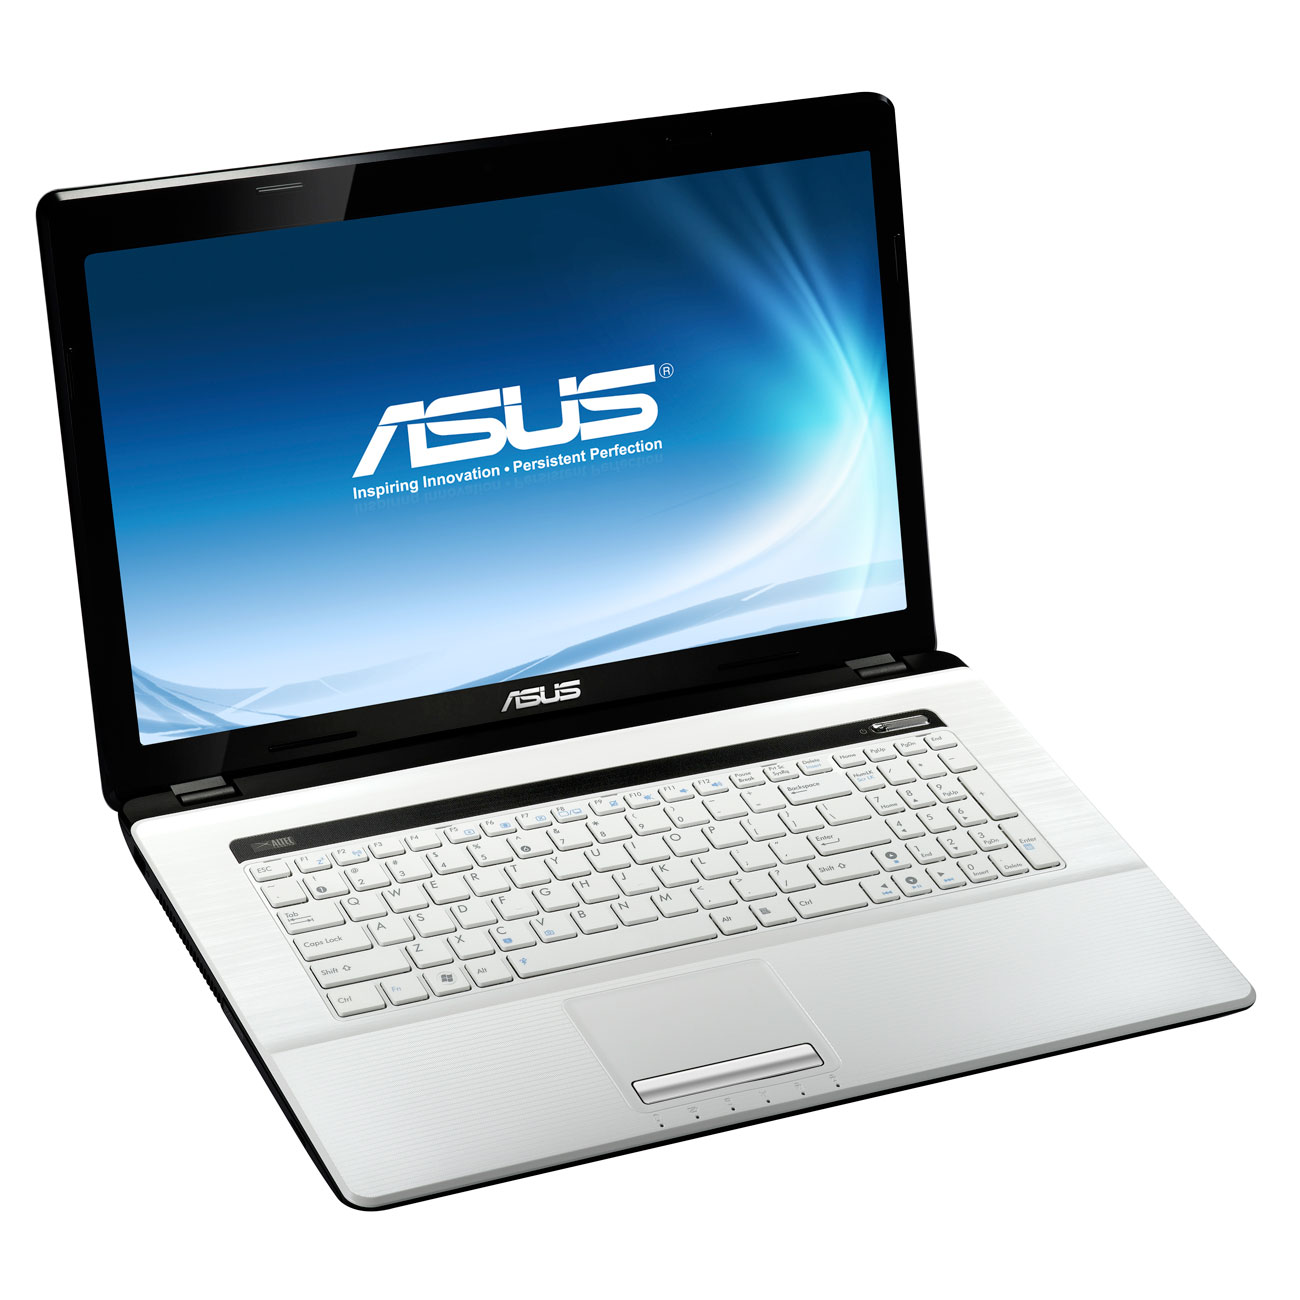 asus k73sd ty207v blanc pc portable asus sur ldlc. Black Bedroom Furniture Sets. Home Design Ideas